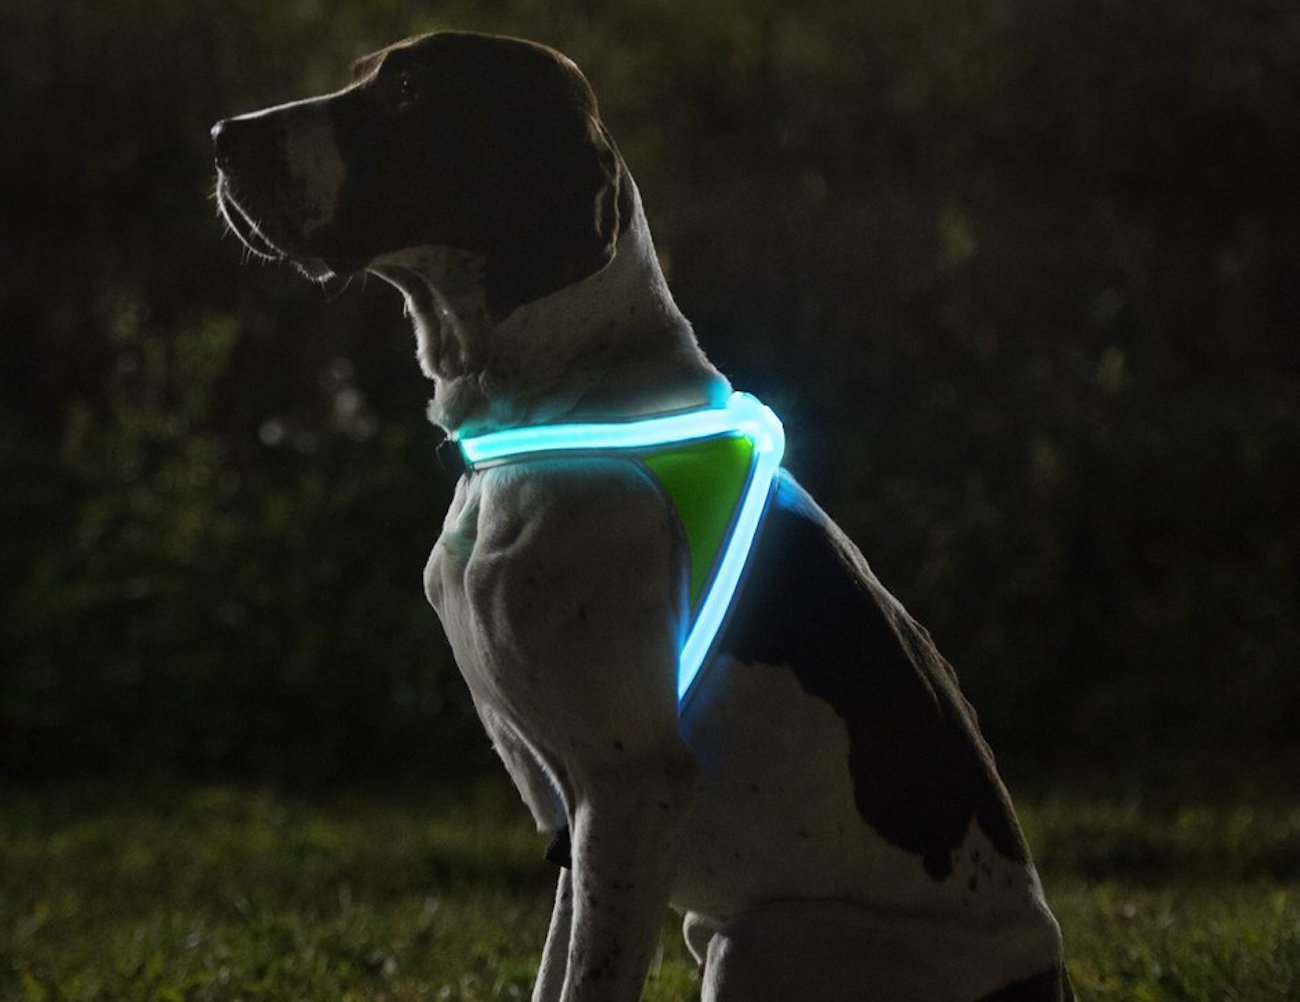 noxgear-lighthound-illuminated-dog-vest-02